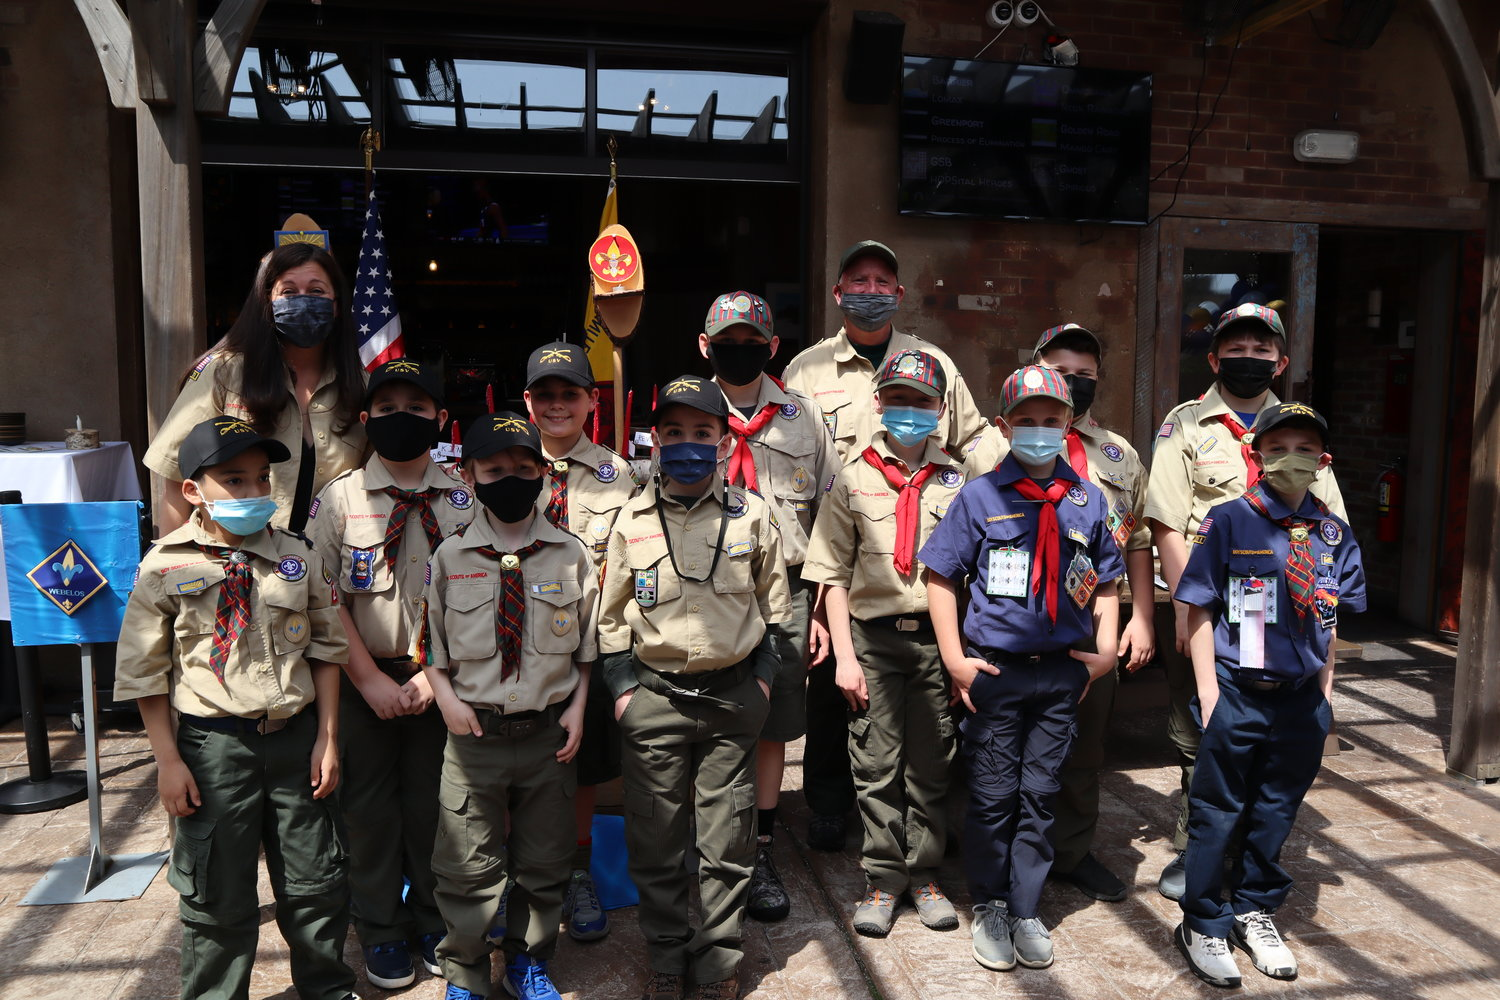 Scout Leaders Jen Casano and Mike Kearney stood with Boy Scouts, from left, Max Martins, Dezmond Pless, Adam Schachter, James Casano, Matthew Kearney, Jason Bowman, Quinn Bubloski, Colton Hyland, Tristan Mansourati, Connor Ryan and Alex Sivin.